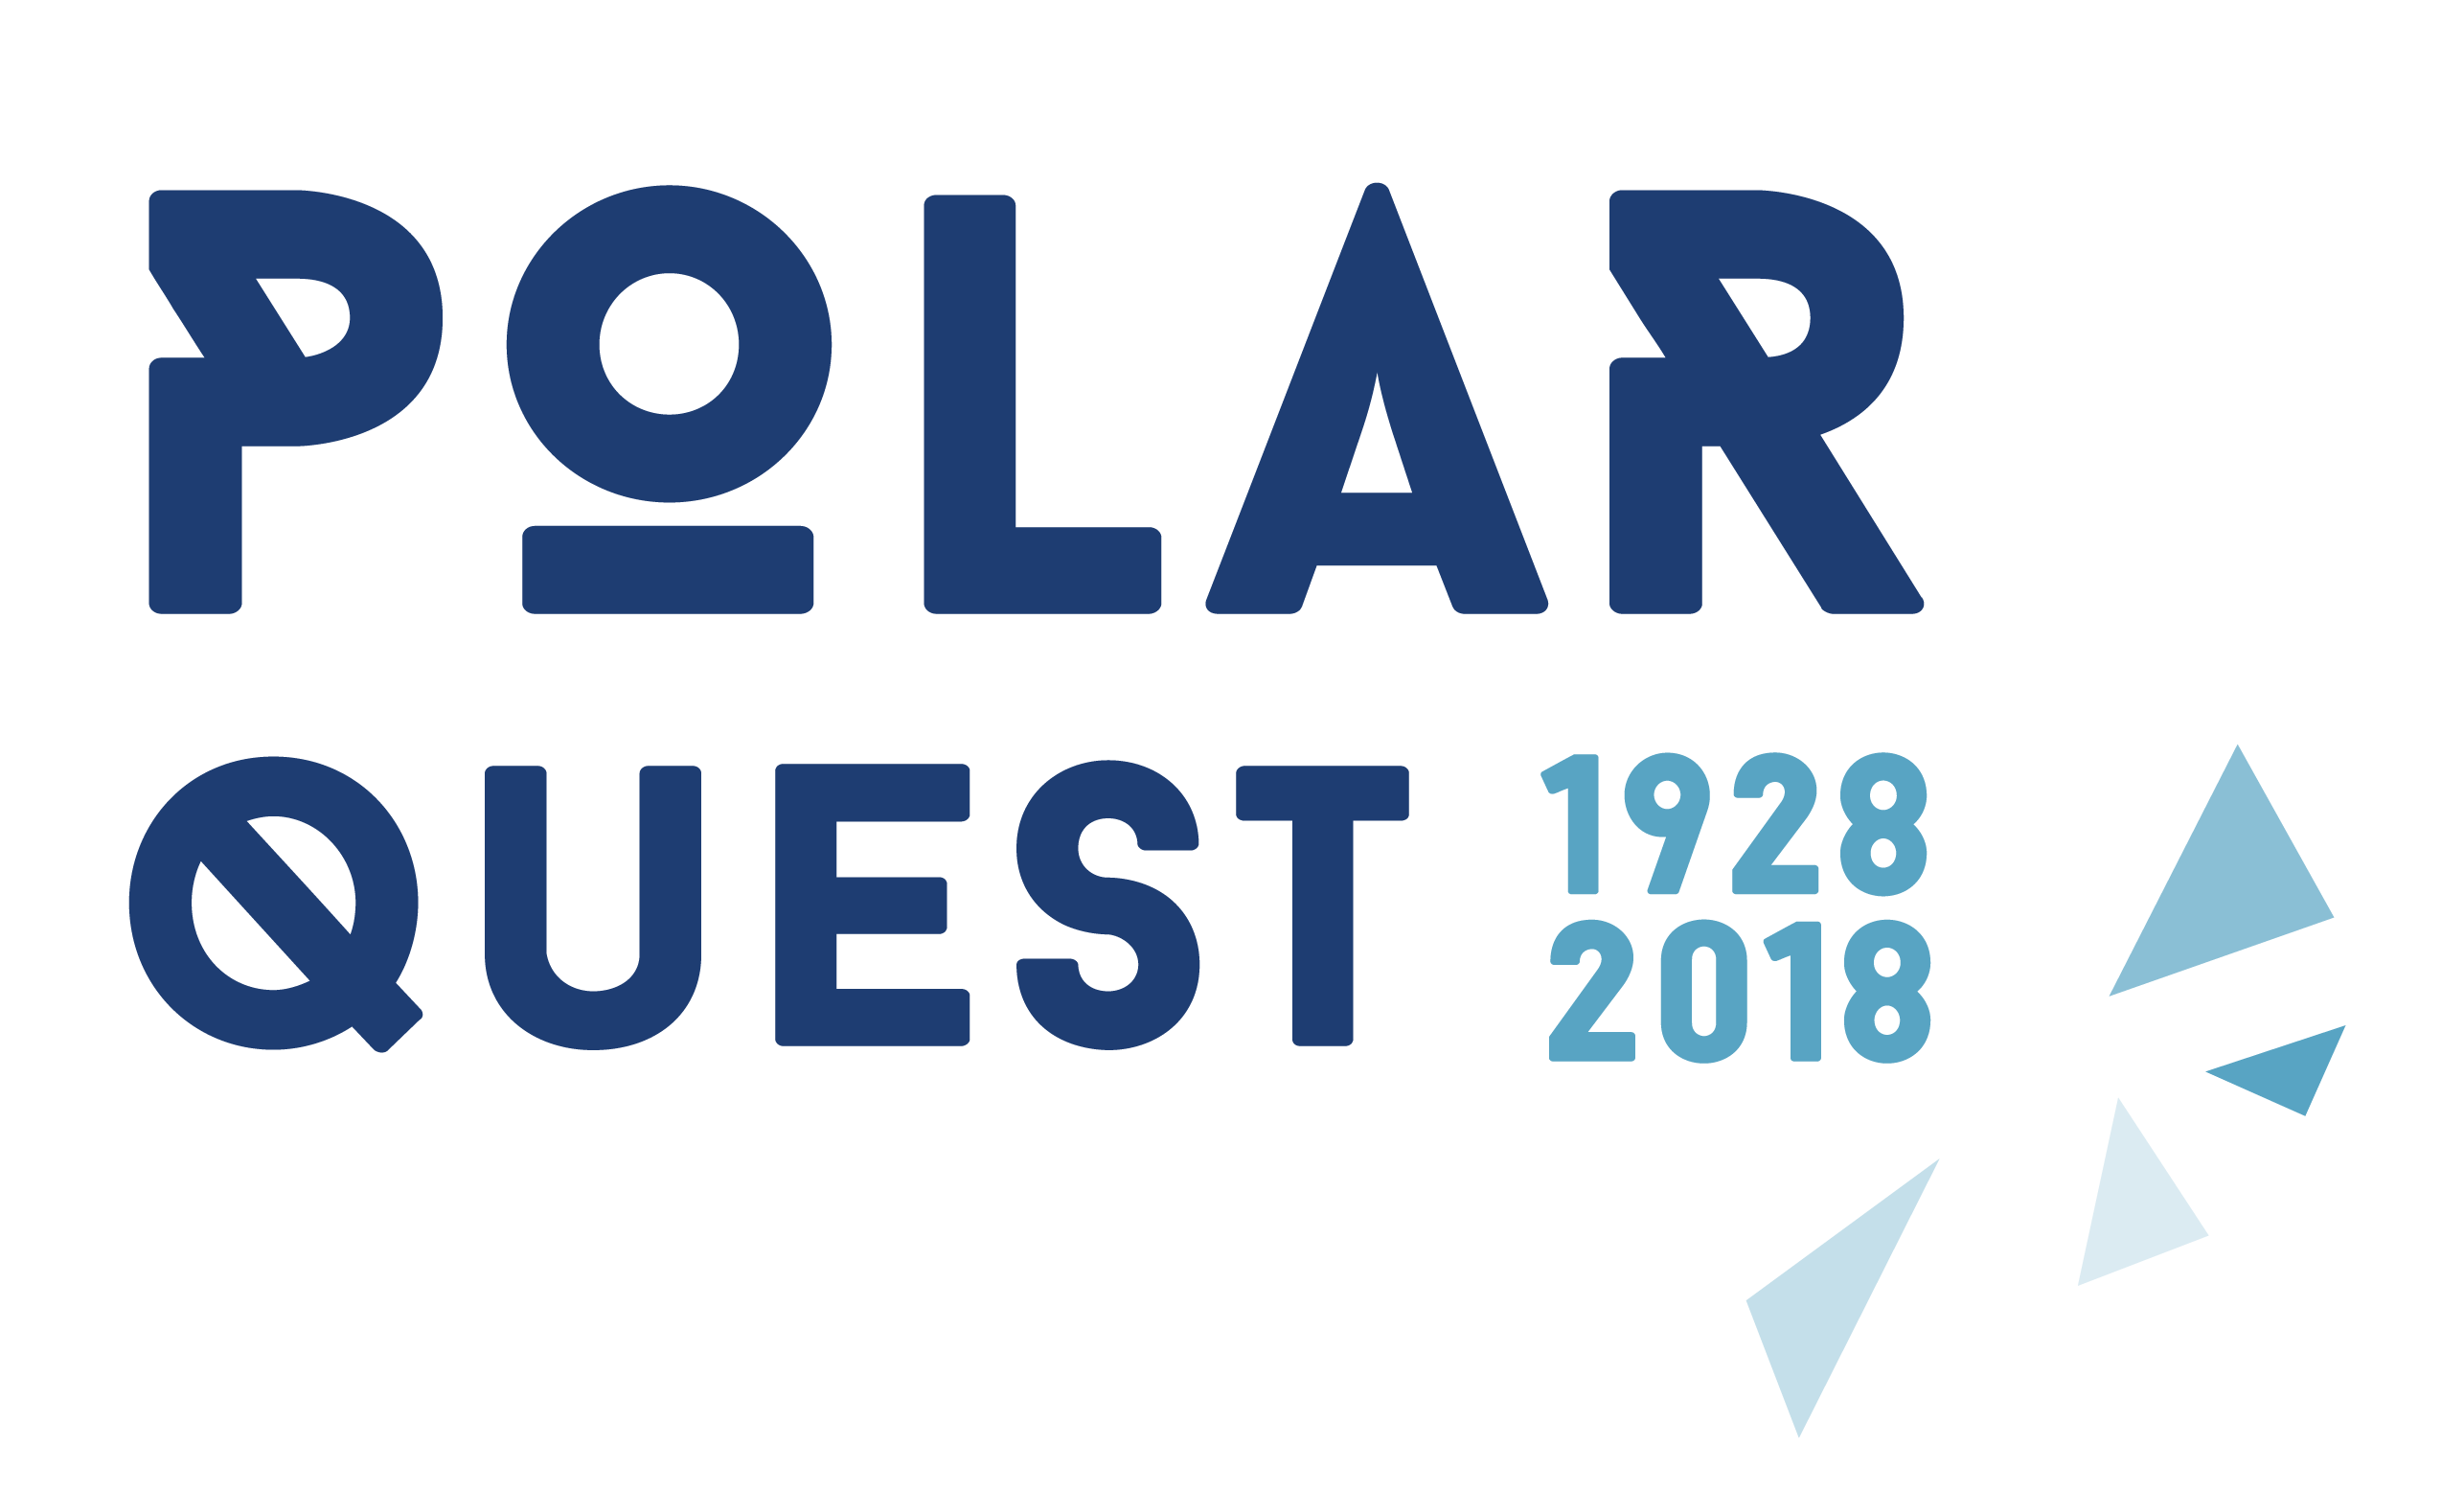 POLARQUEST 2018